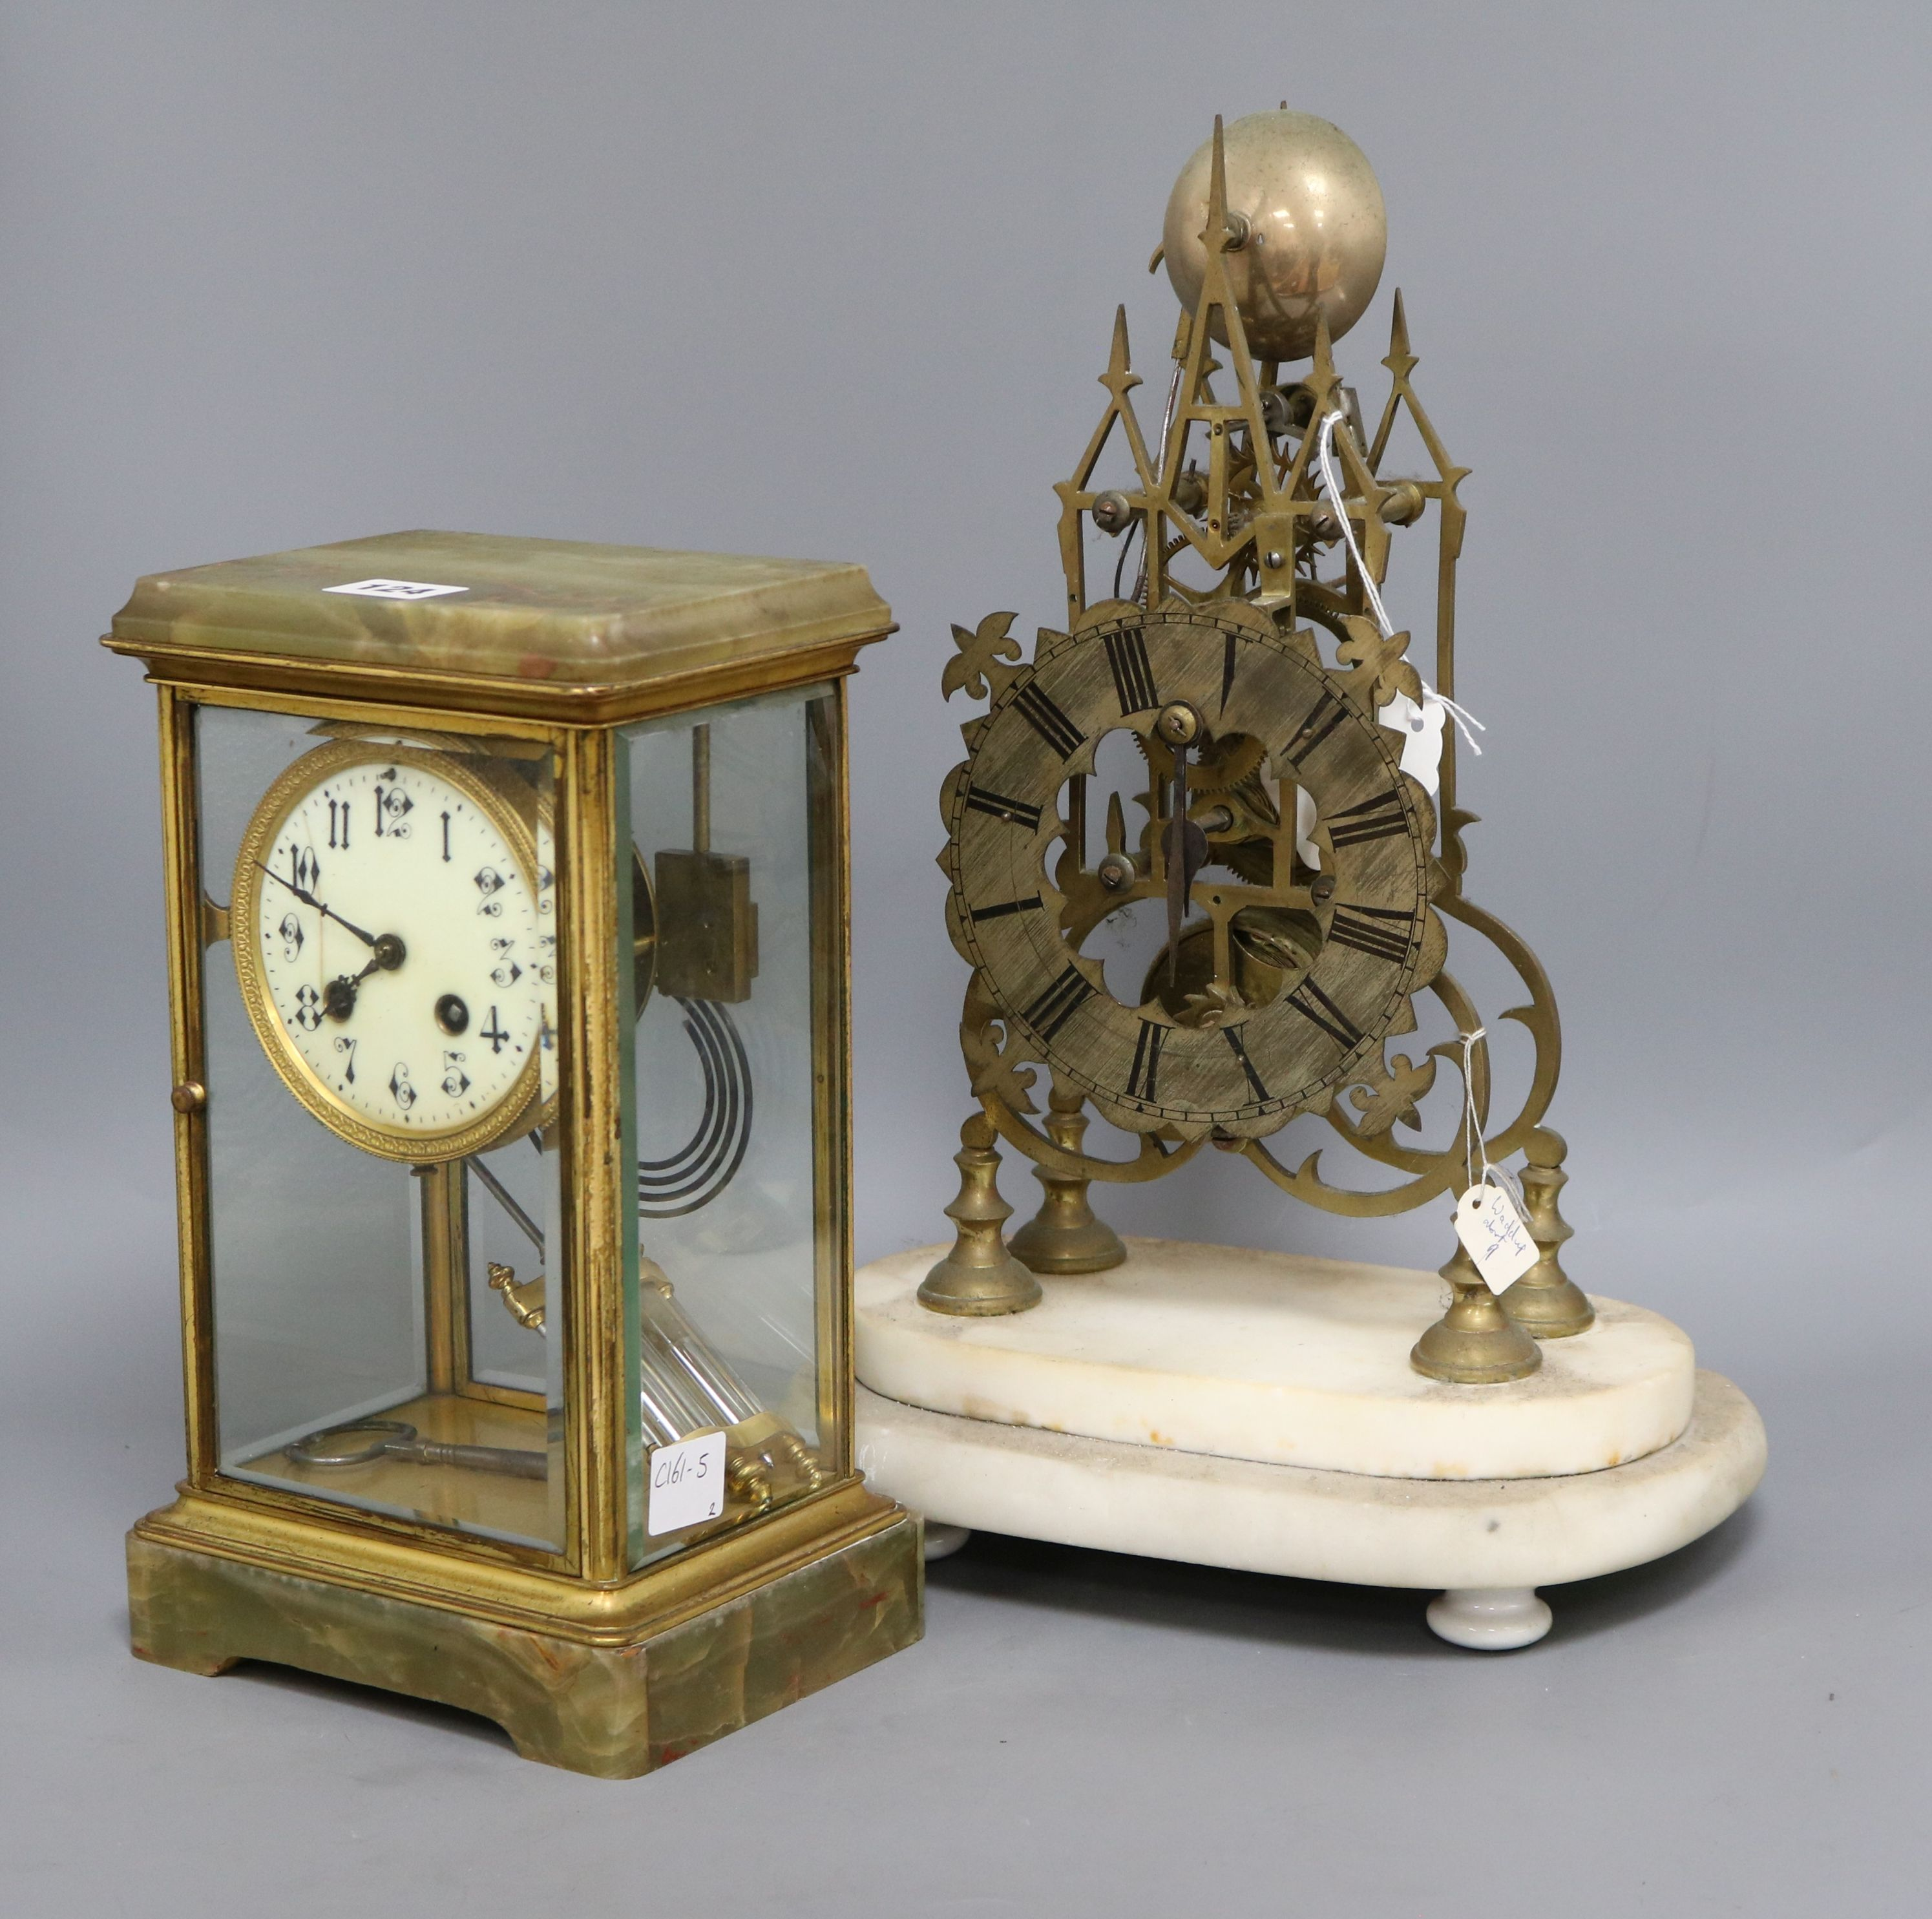 Lot 124 - An onyx four glass clock and a skeleton clock